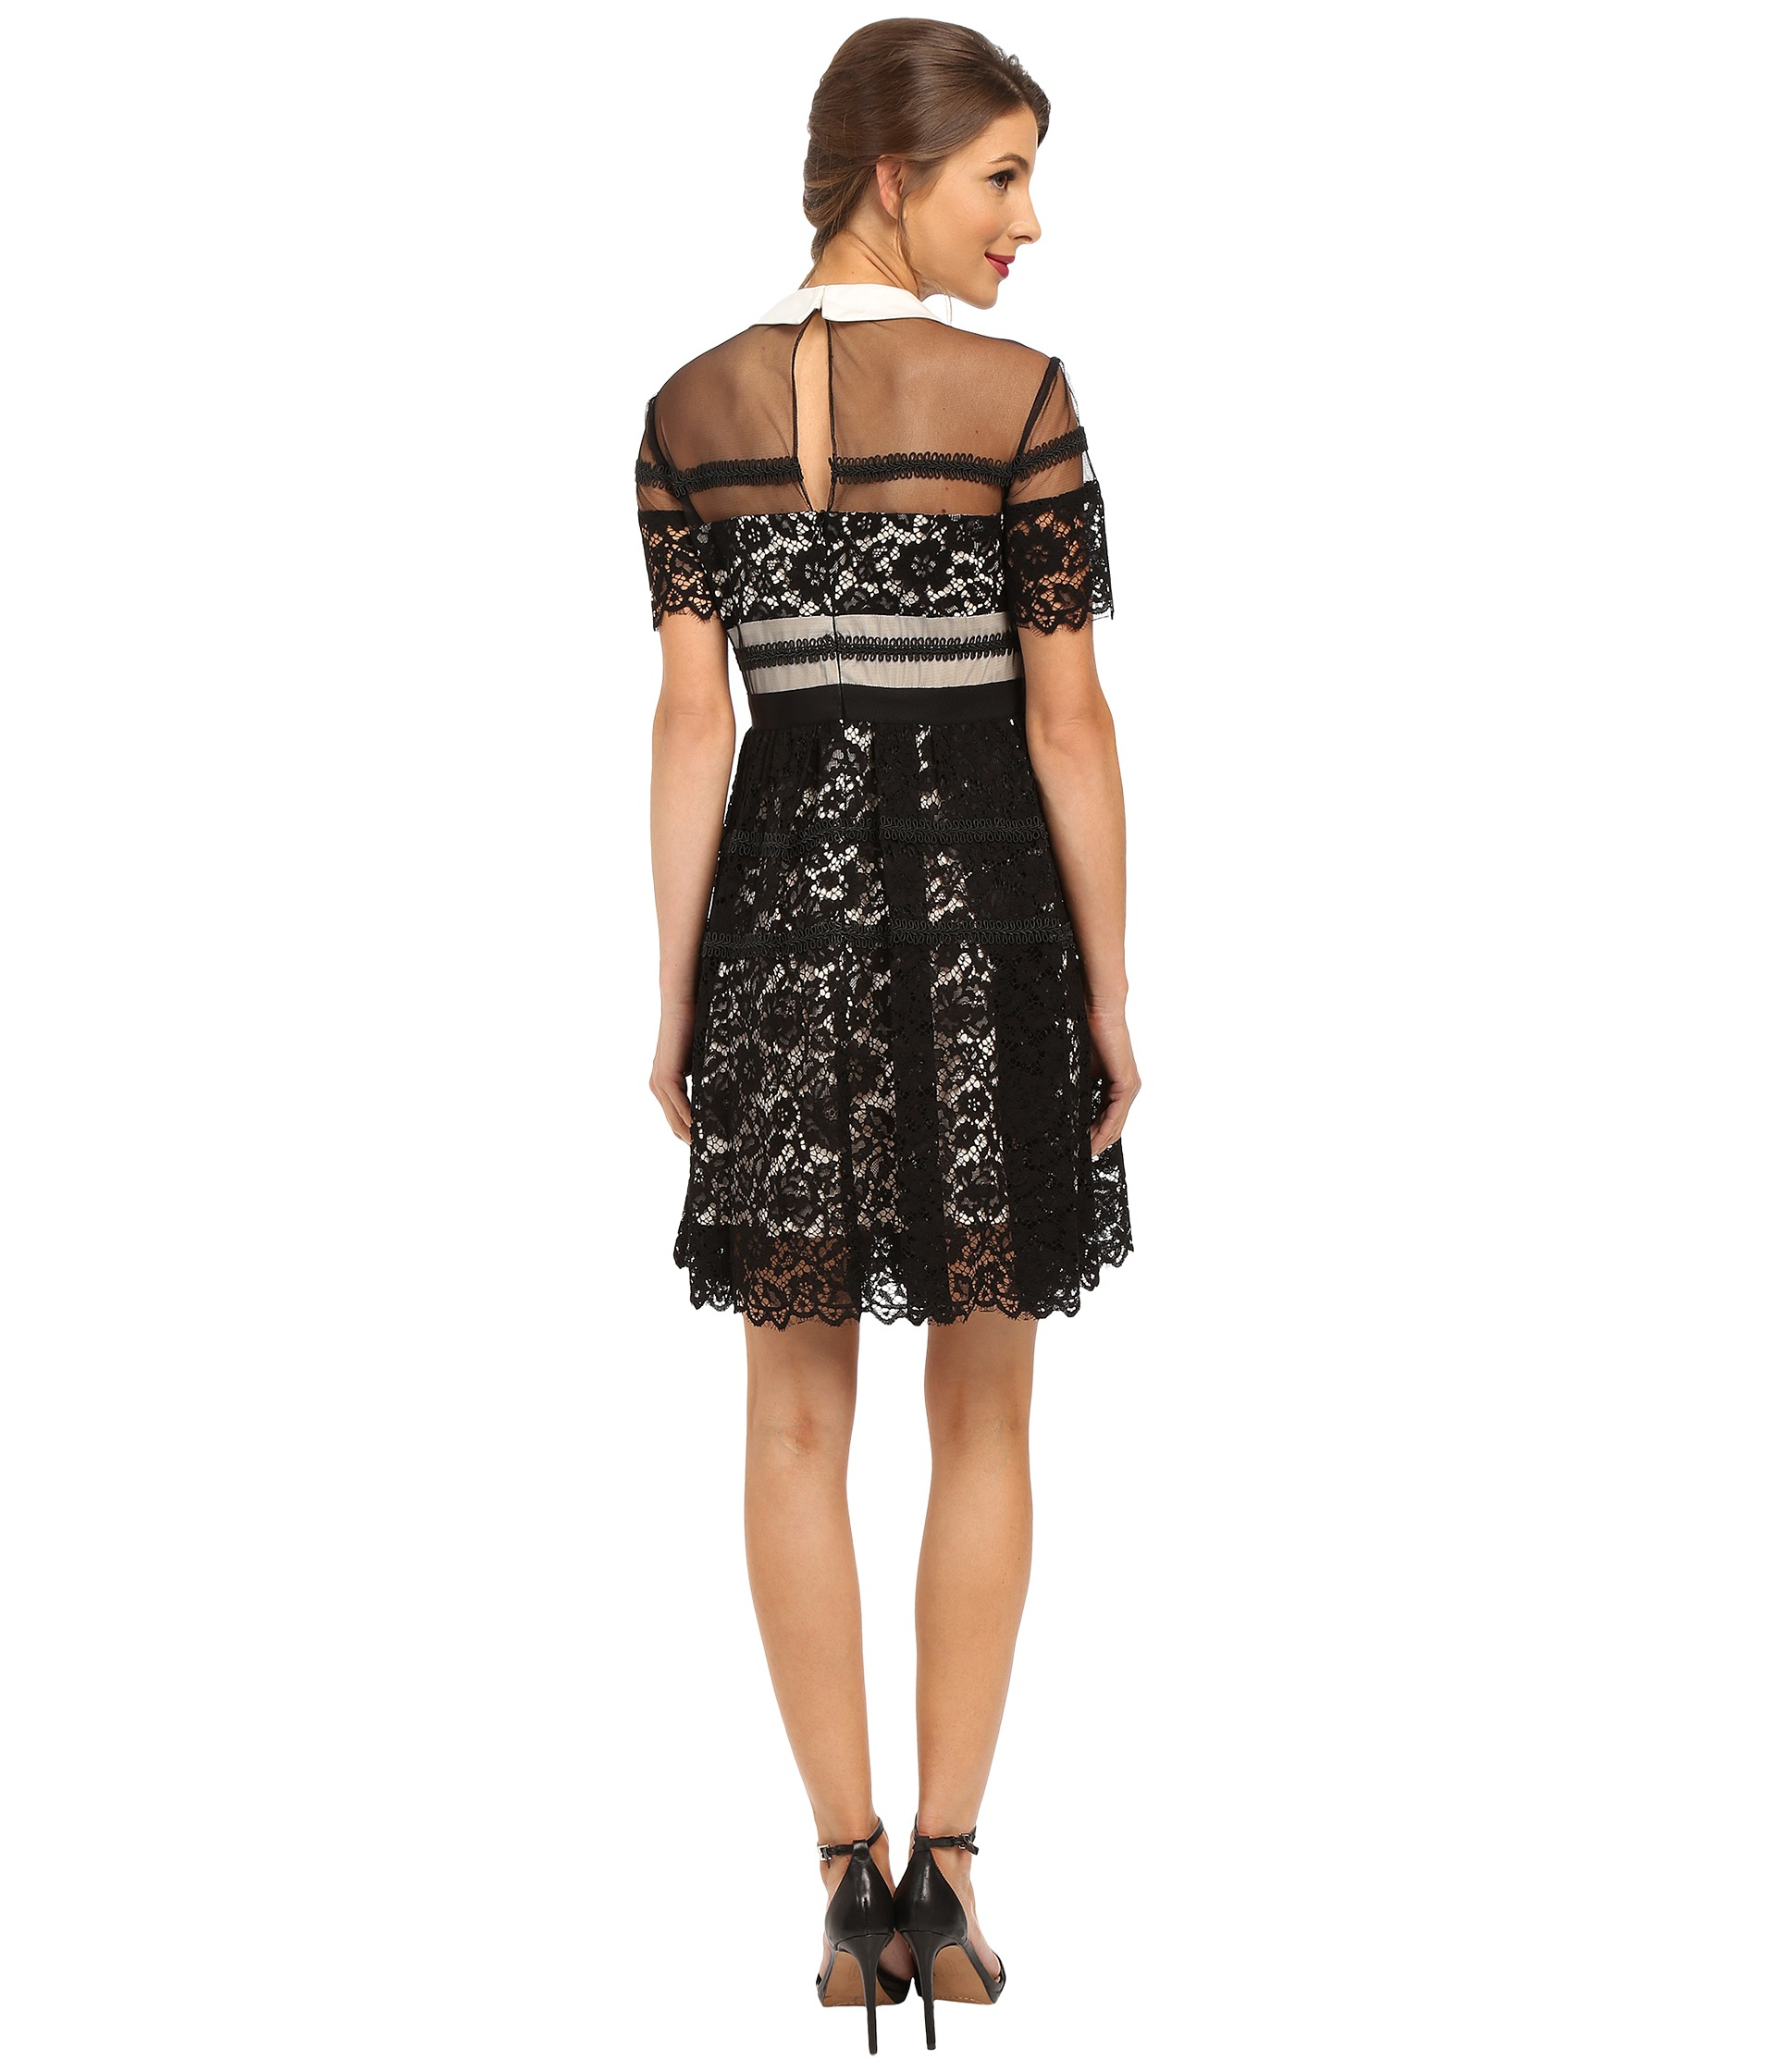 Donna morgan Short Sleeve Lace Shirt Dress With Collar in Black - Lyst